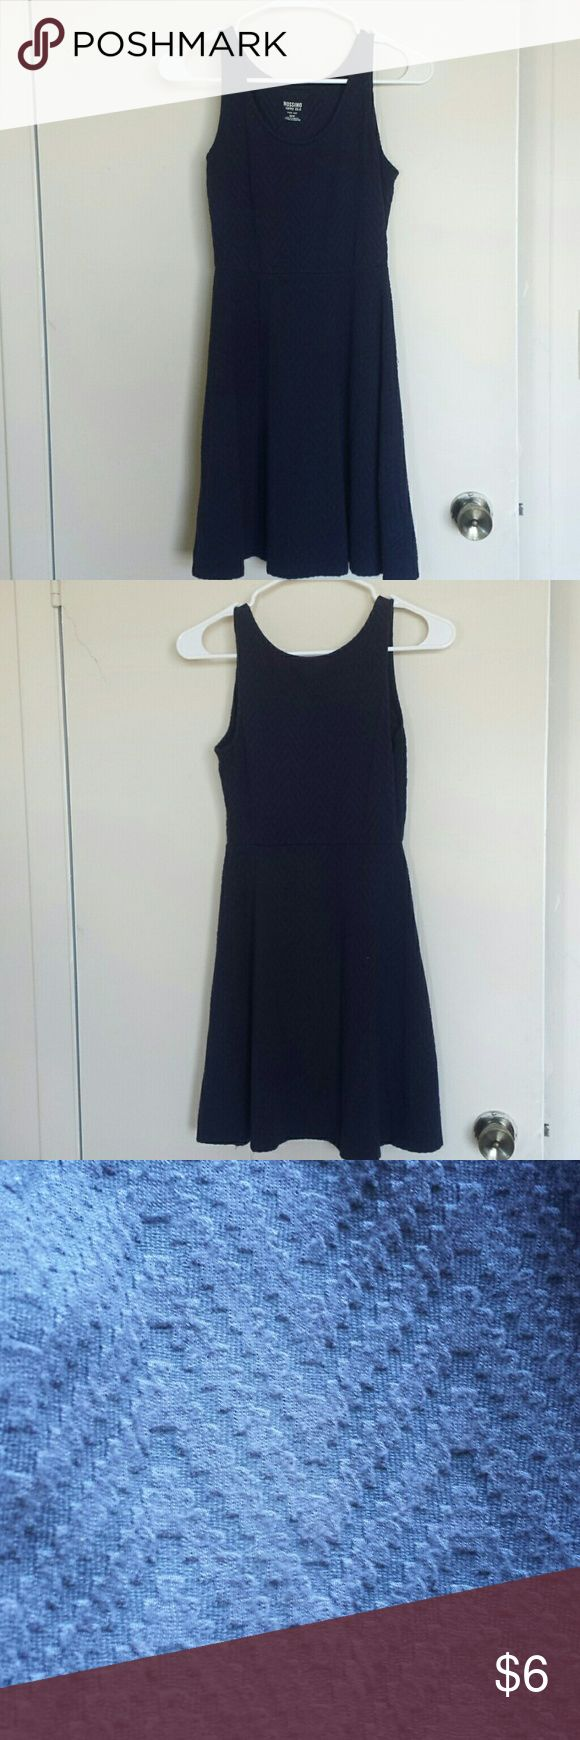 Navy Skater Dress Mossimo Textured Navy Skater Dress. Size X-Small. No stains, holes, or tears. Excellent condition. Mossimo Supply Co Dresses